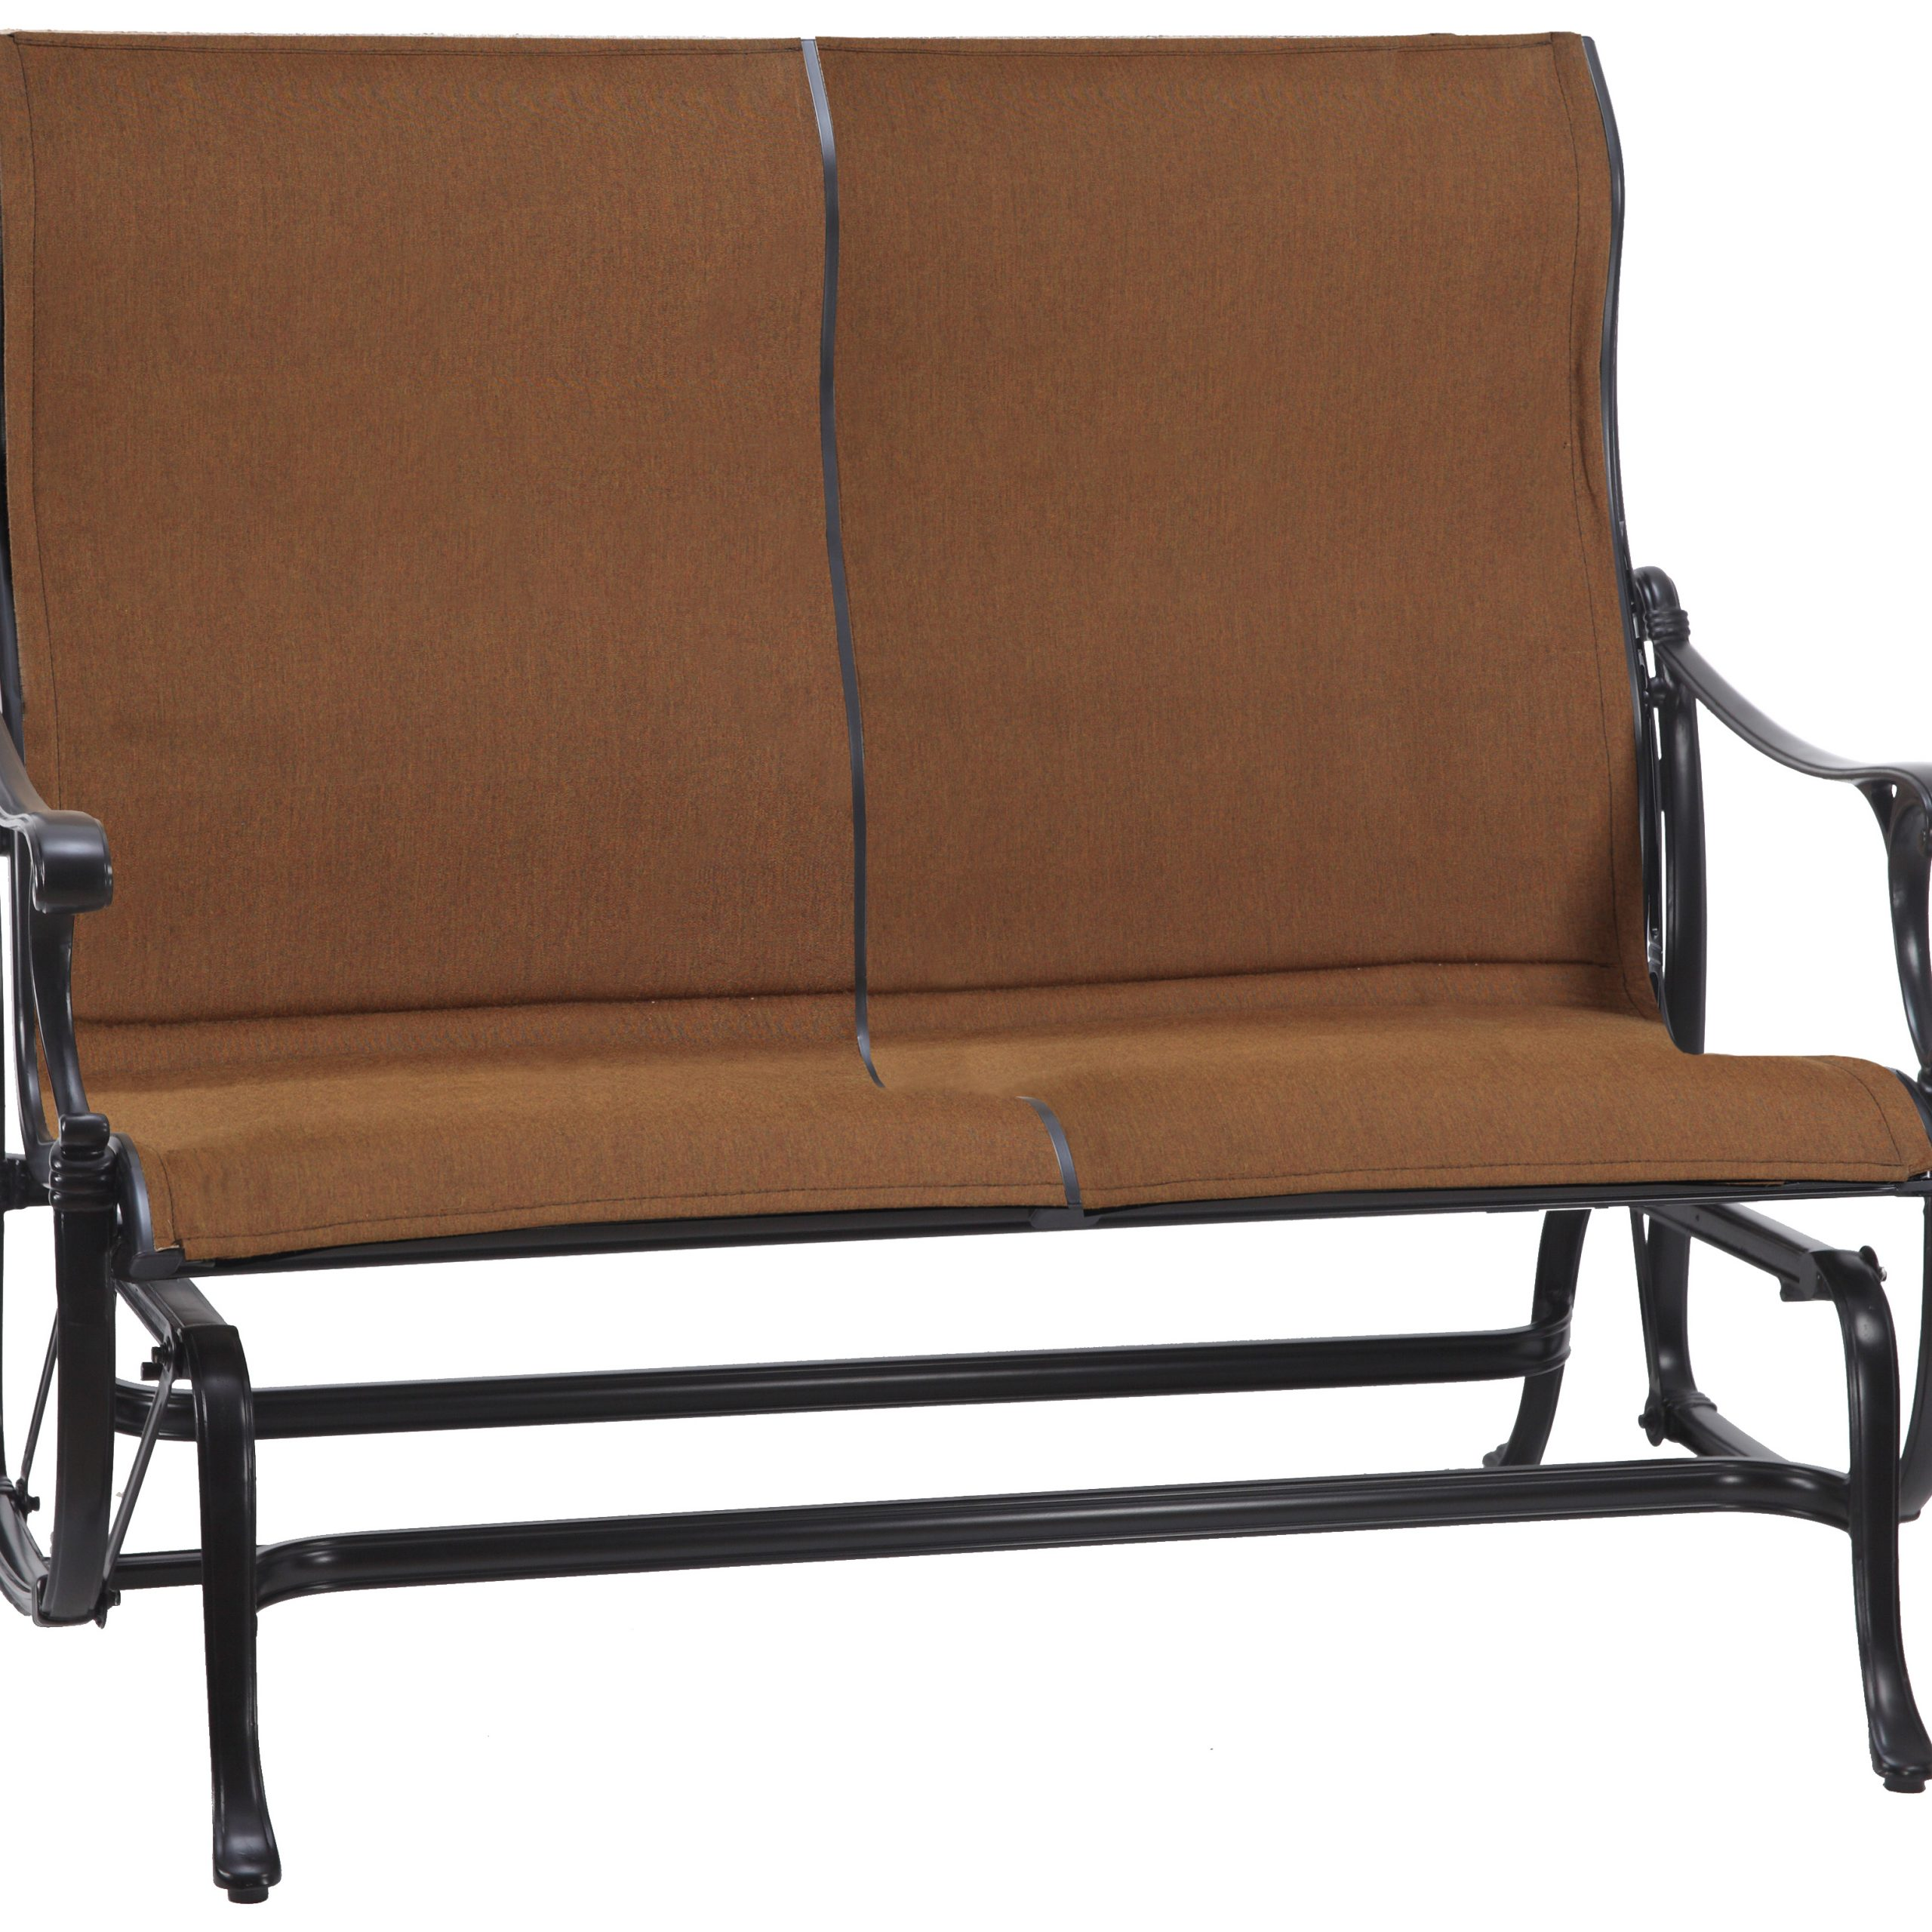 Padded Sling Loveseats With Cushions Pertaining To Most Up To Date Gensun Michigan Padded Sling Cast Aluminum High Back Loveseat Glider (View 13 of 30)